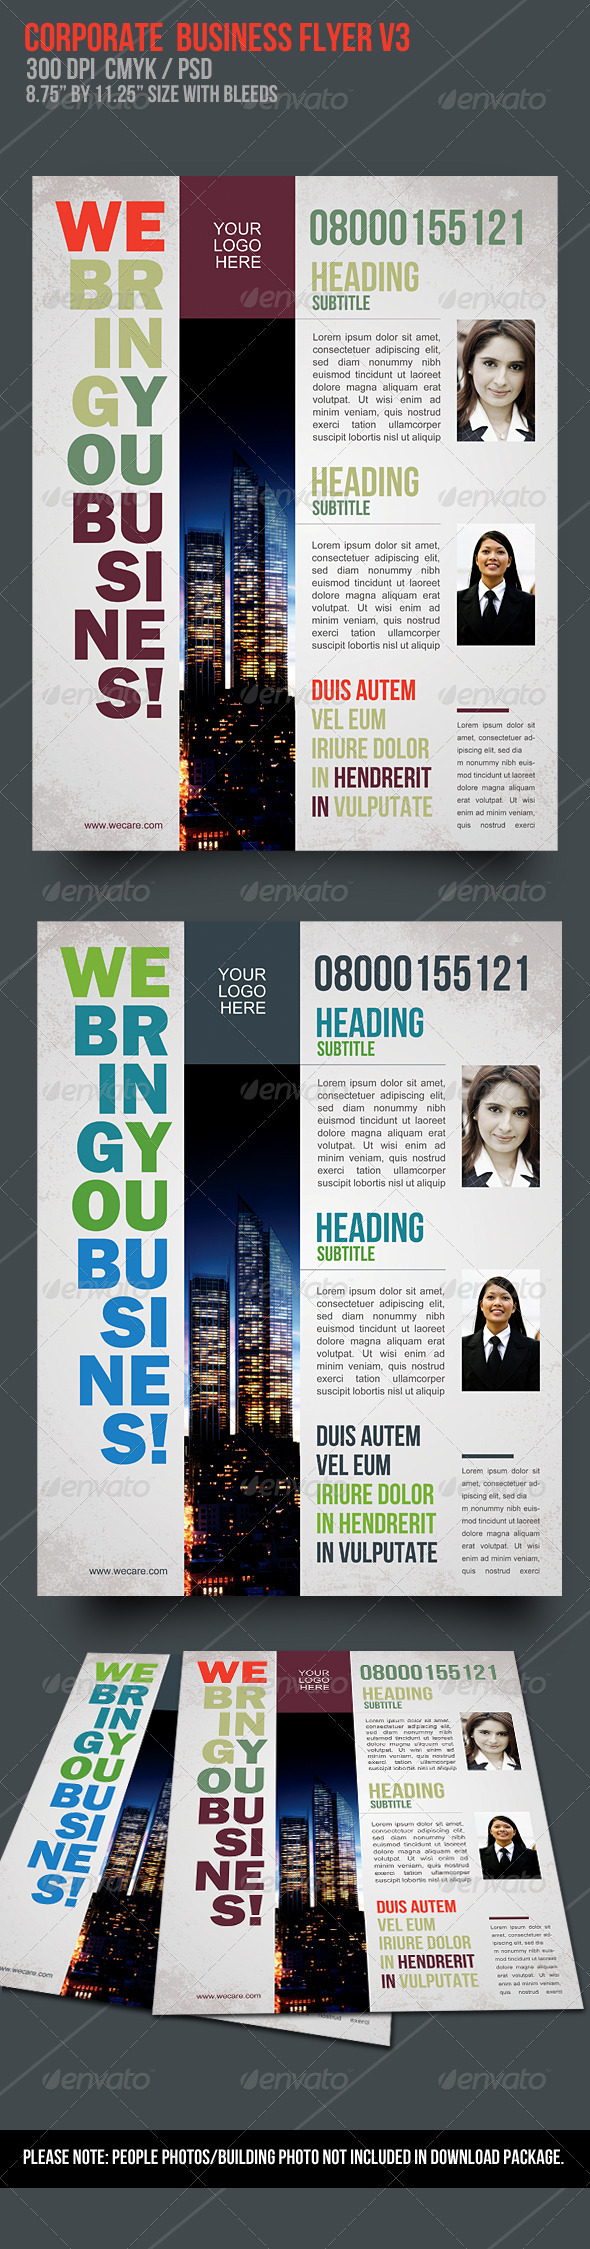 Corporate Business Flyer V3 - Corporate Flyers